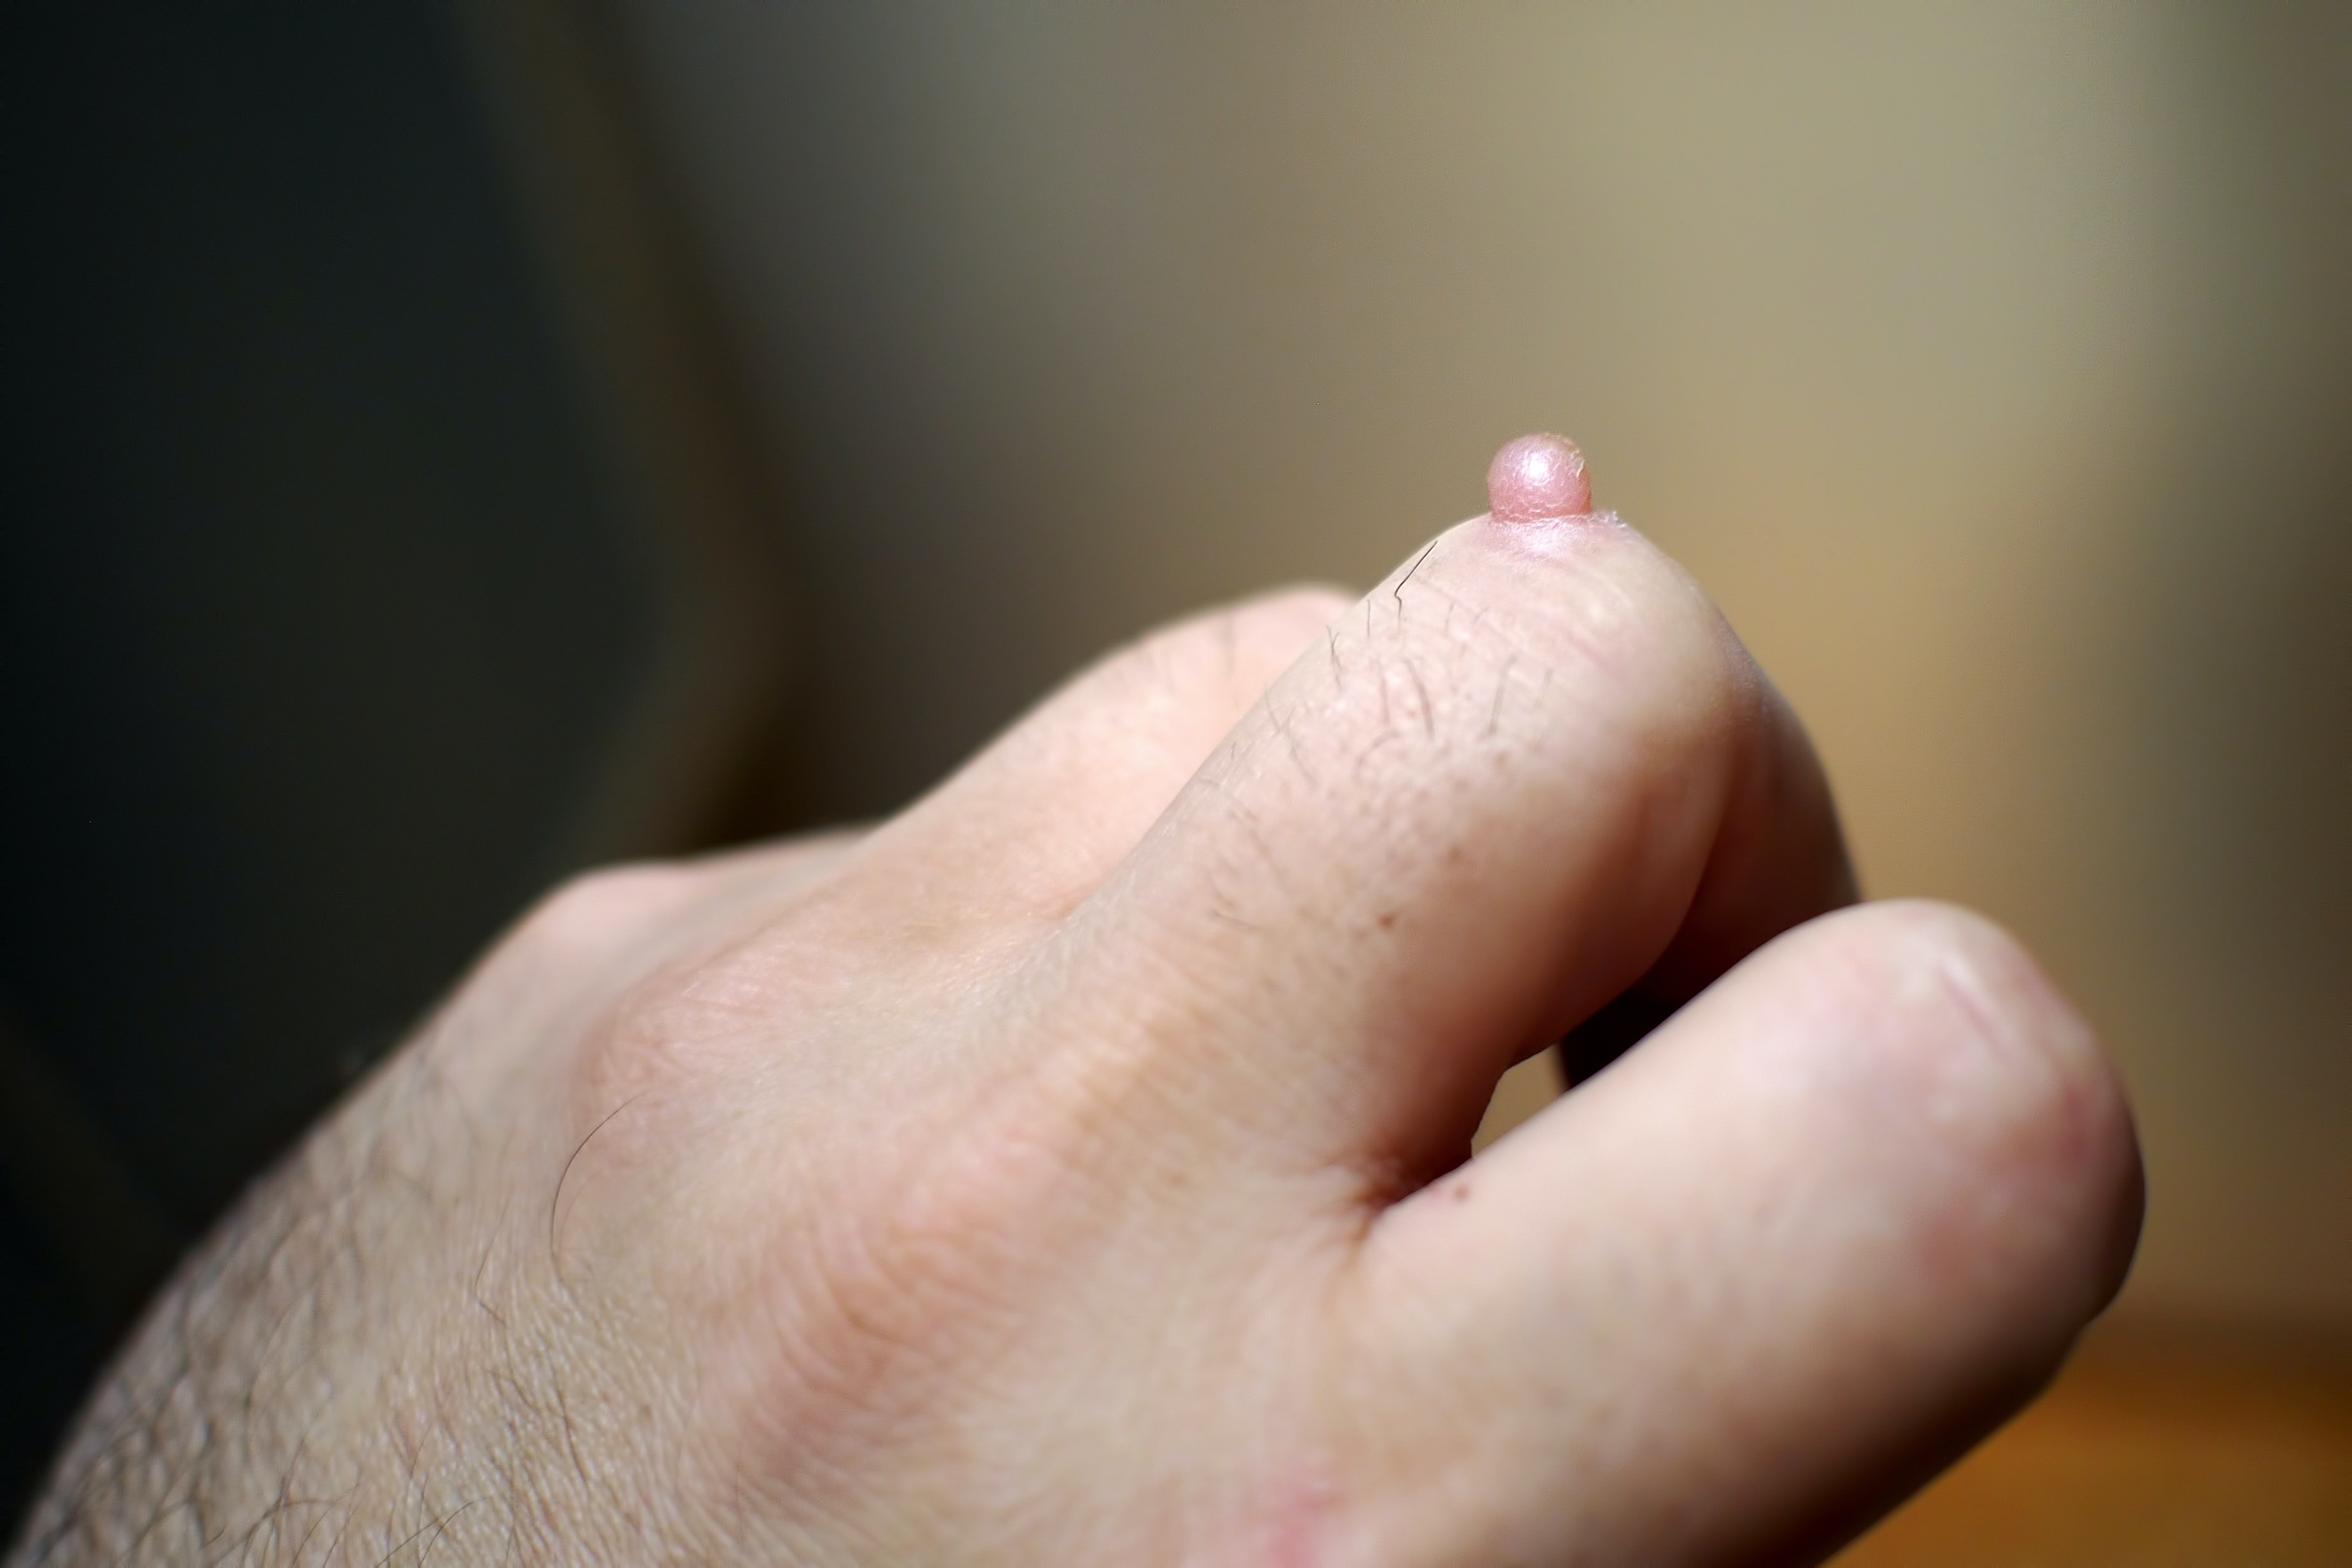 An image depicting a person suffering from pink or red mass on hand symptoms